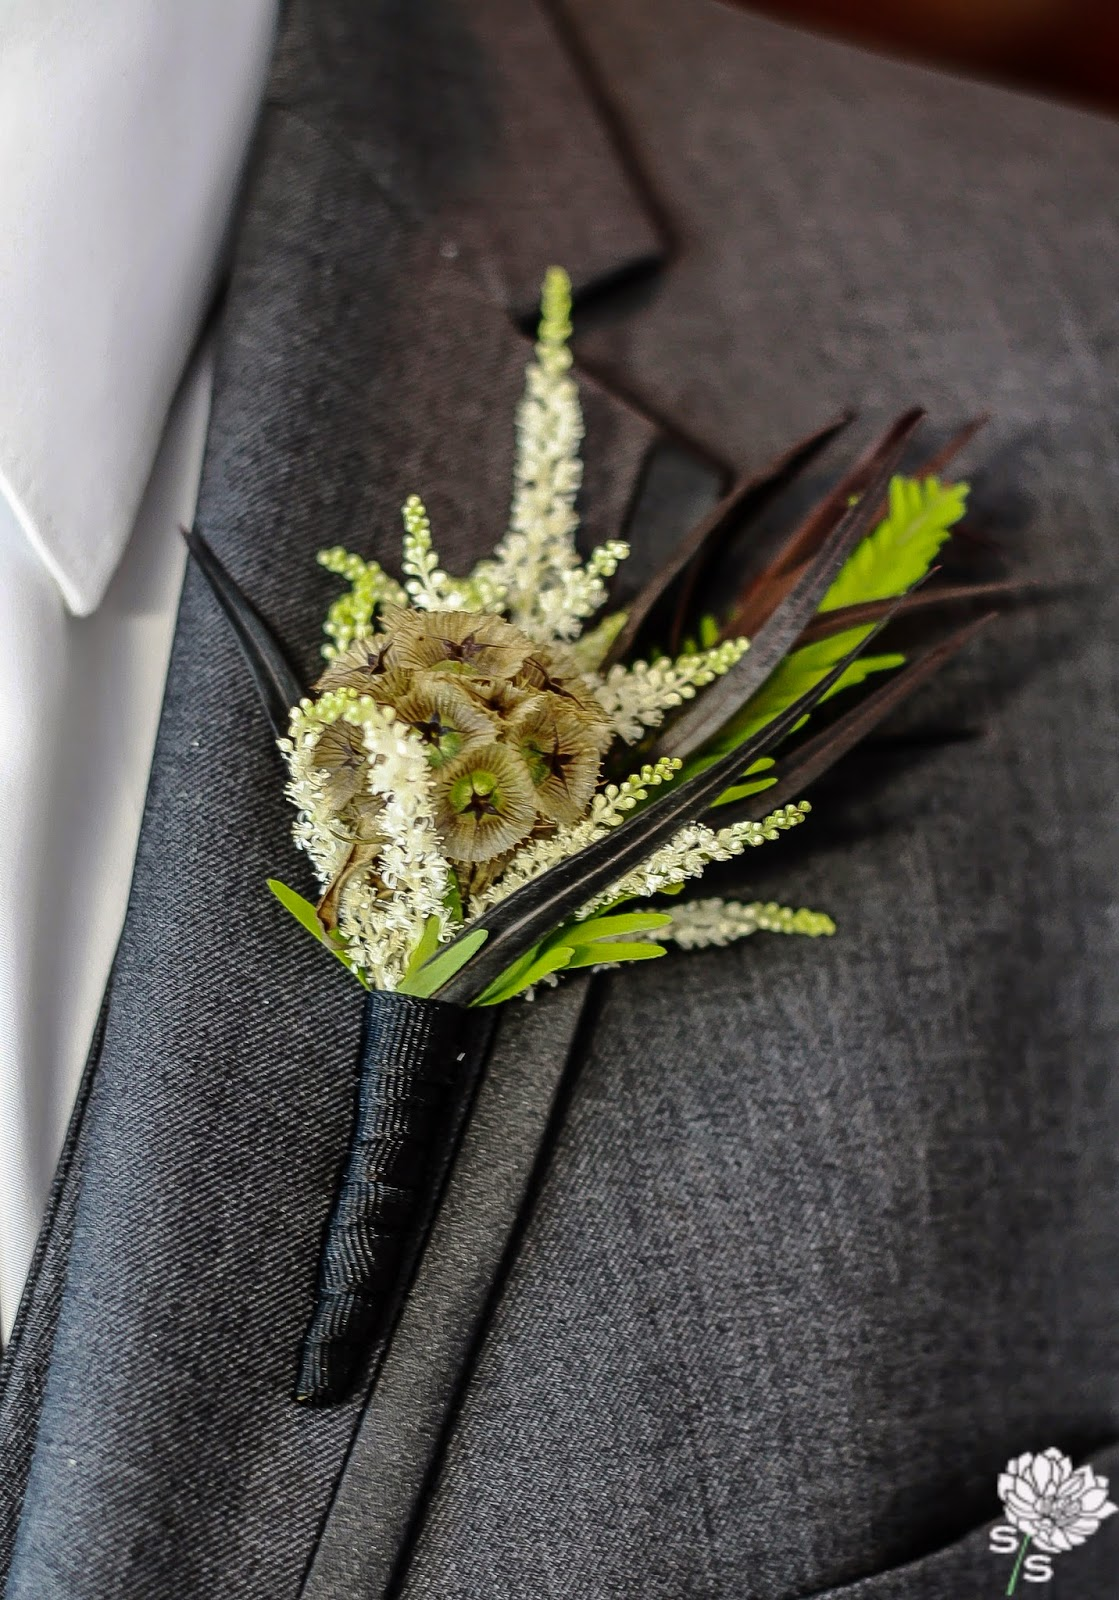 The Roundhouse Wedding - Beacon, NY - Hudson Valley Wedding - Boutonniere - Scabiosa Pod - Wedding Flowers - Splendid Stems Floral Designs